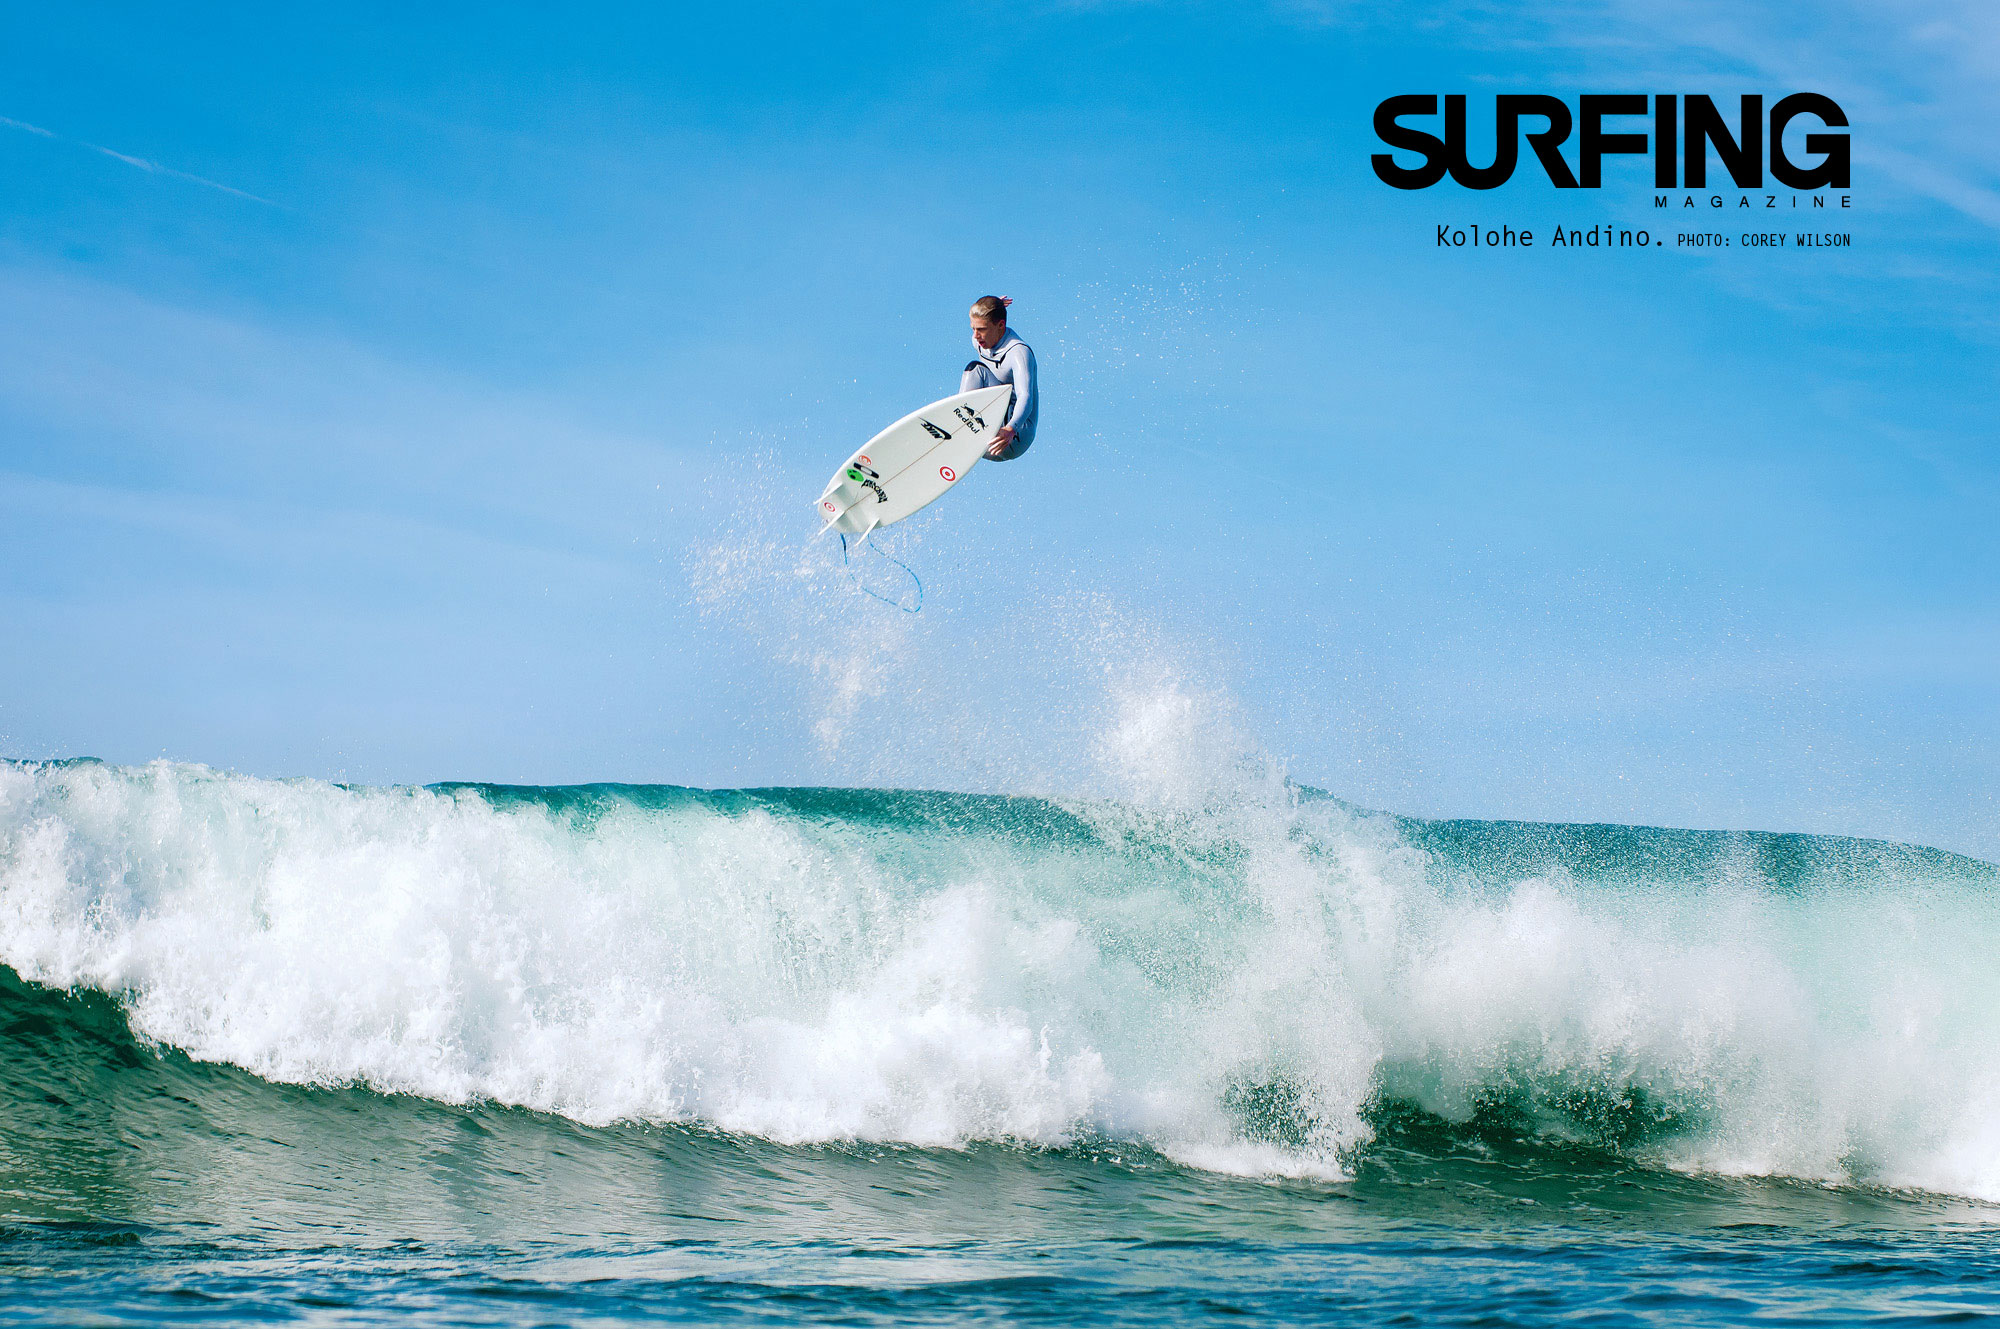 wilson surfing magazine 610x405 SURFING Magazine May 2012 Wallpaper 2000x1329